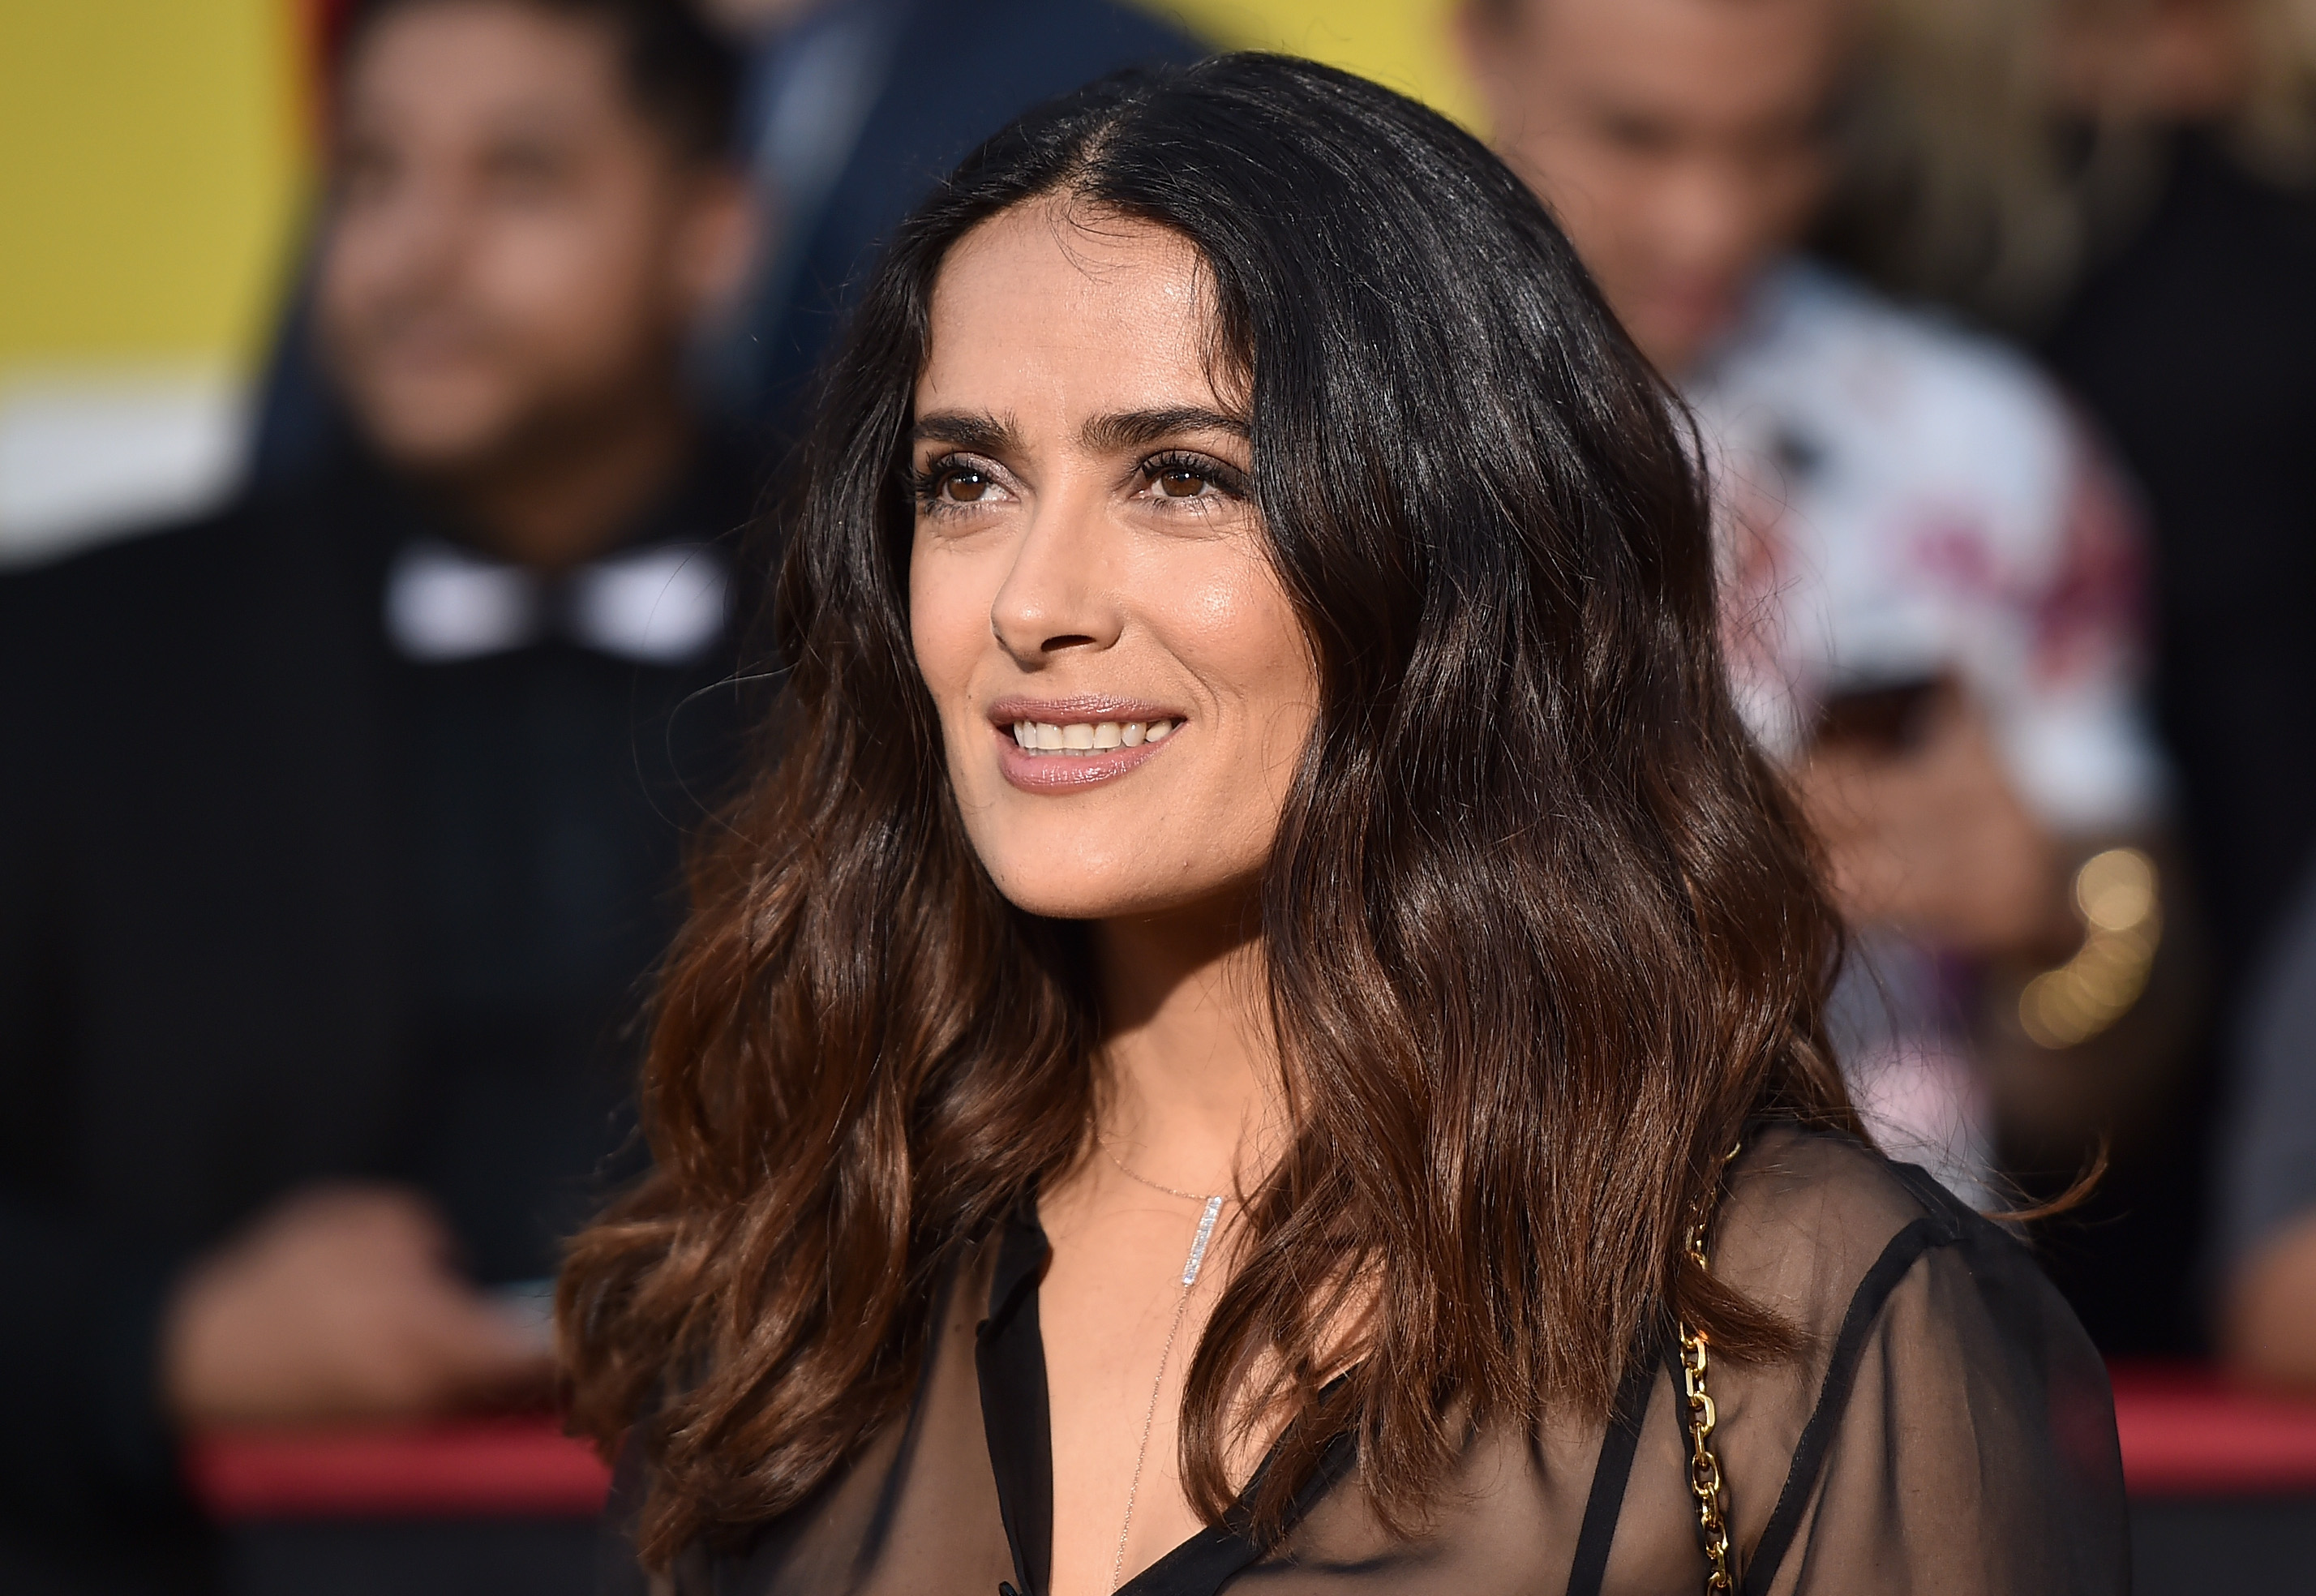 Salma Hayek says she's 'proud' of her gray hair